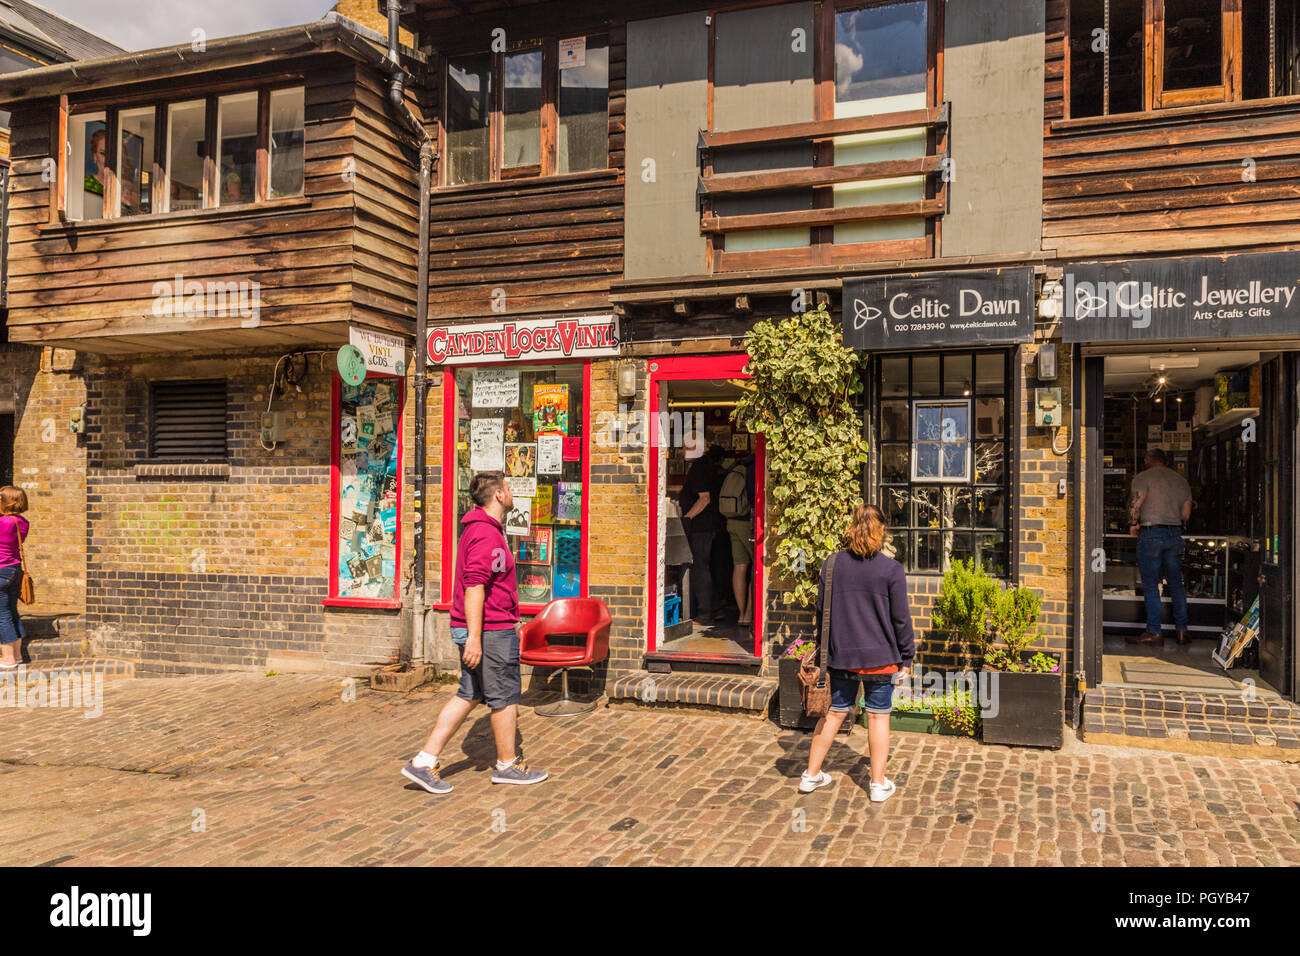 A typical view in Camden Market london - Stock Image